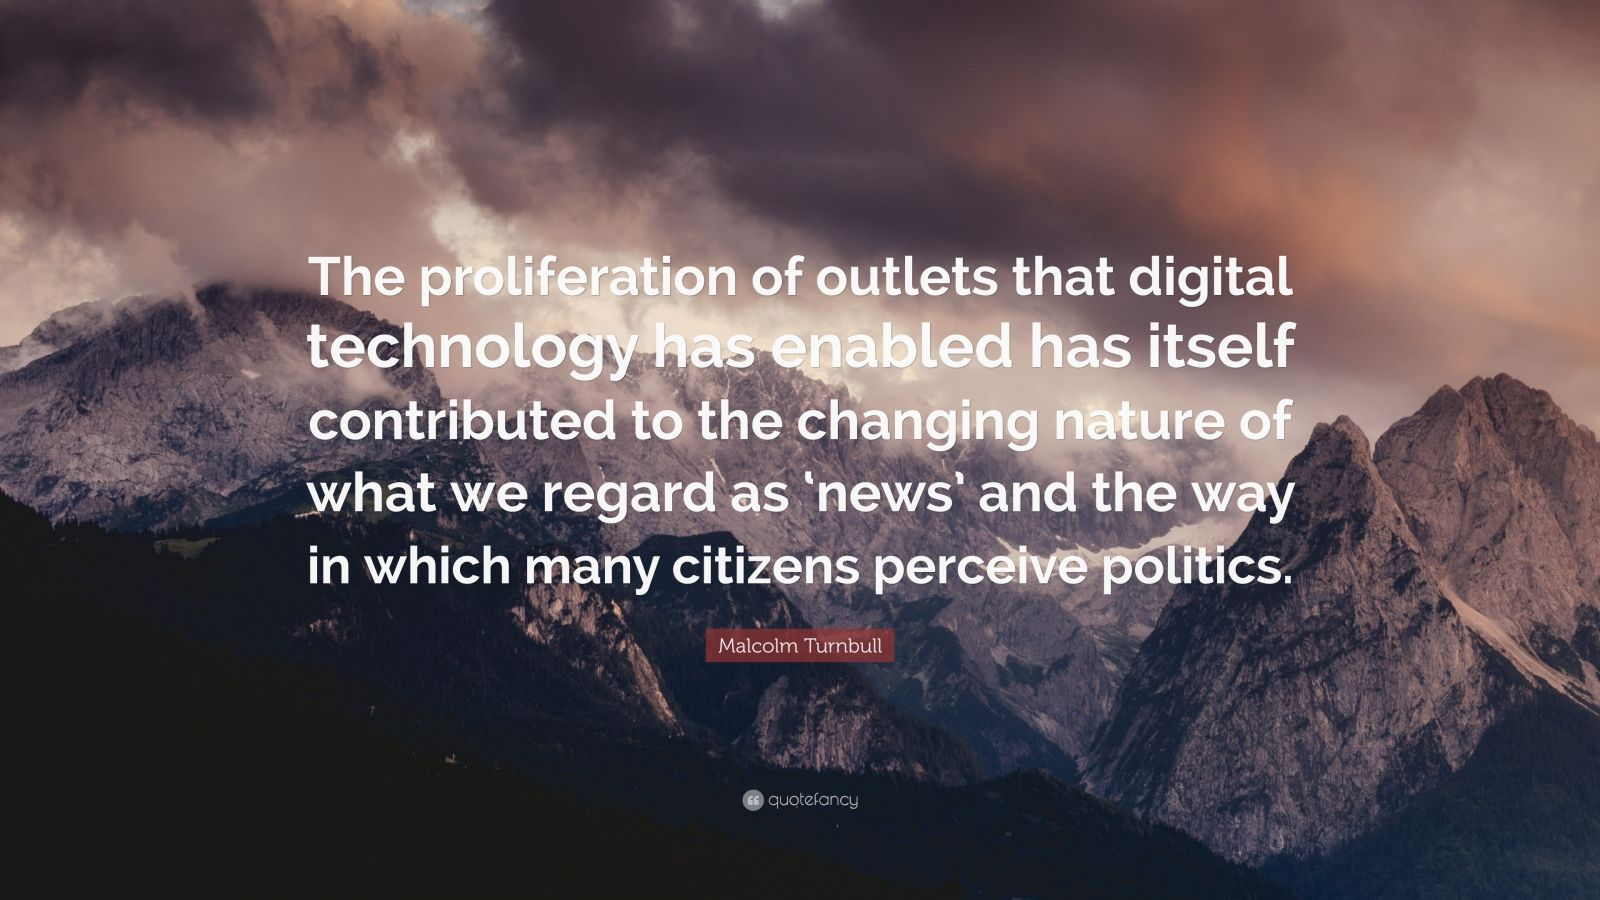 """Malcolm Turnbull Quote: """"The proliferation of outlets that digital technology has enabled has itself contributed to the changing nature of what we regard as 'news' and the way in which many citizens perceive politics."""""""